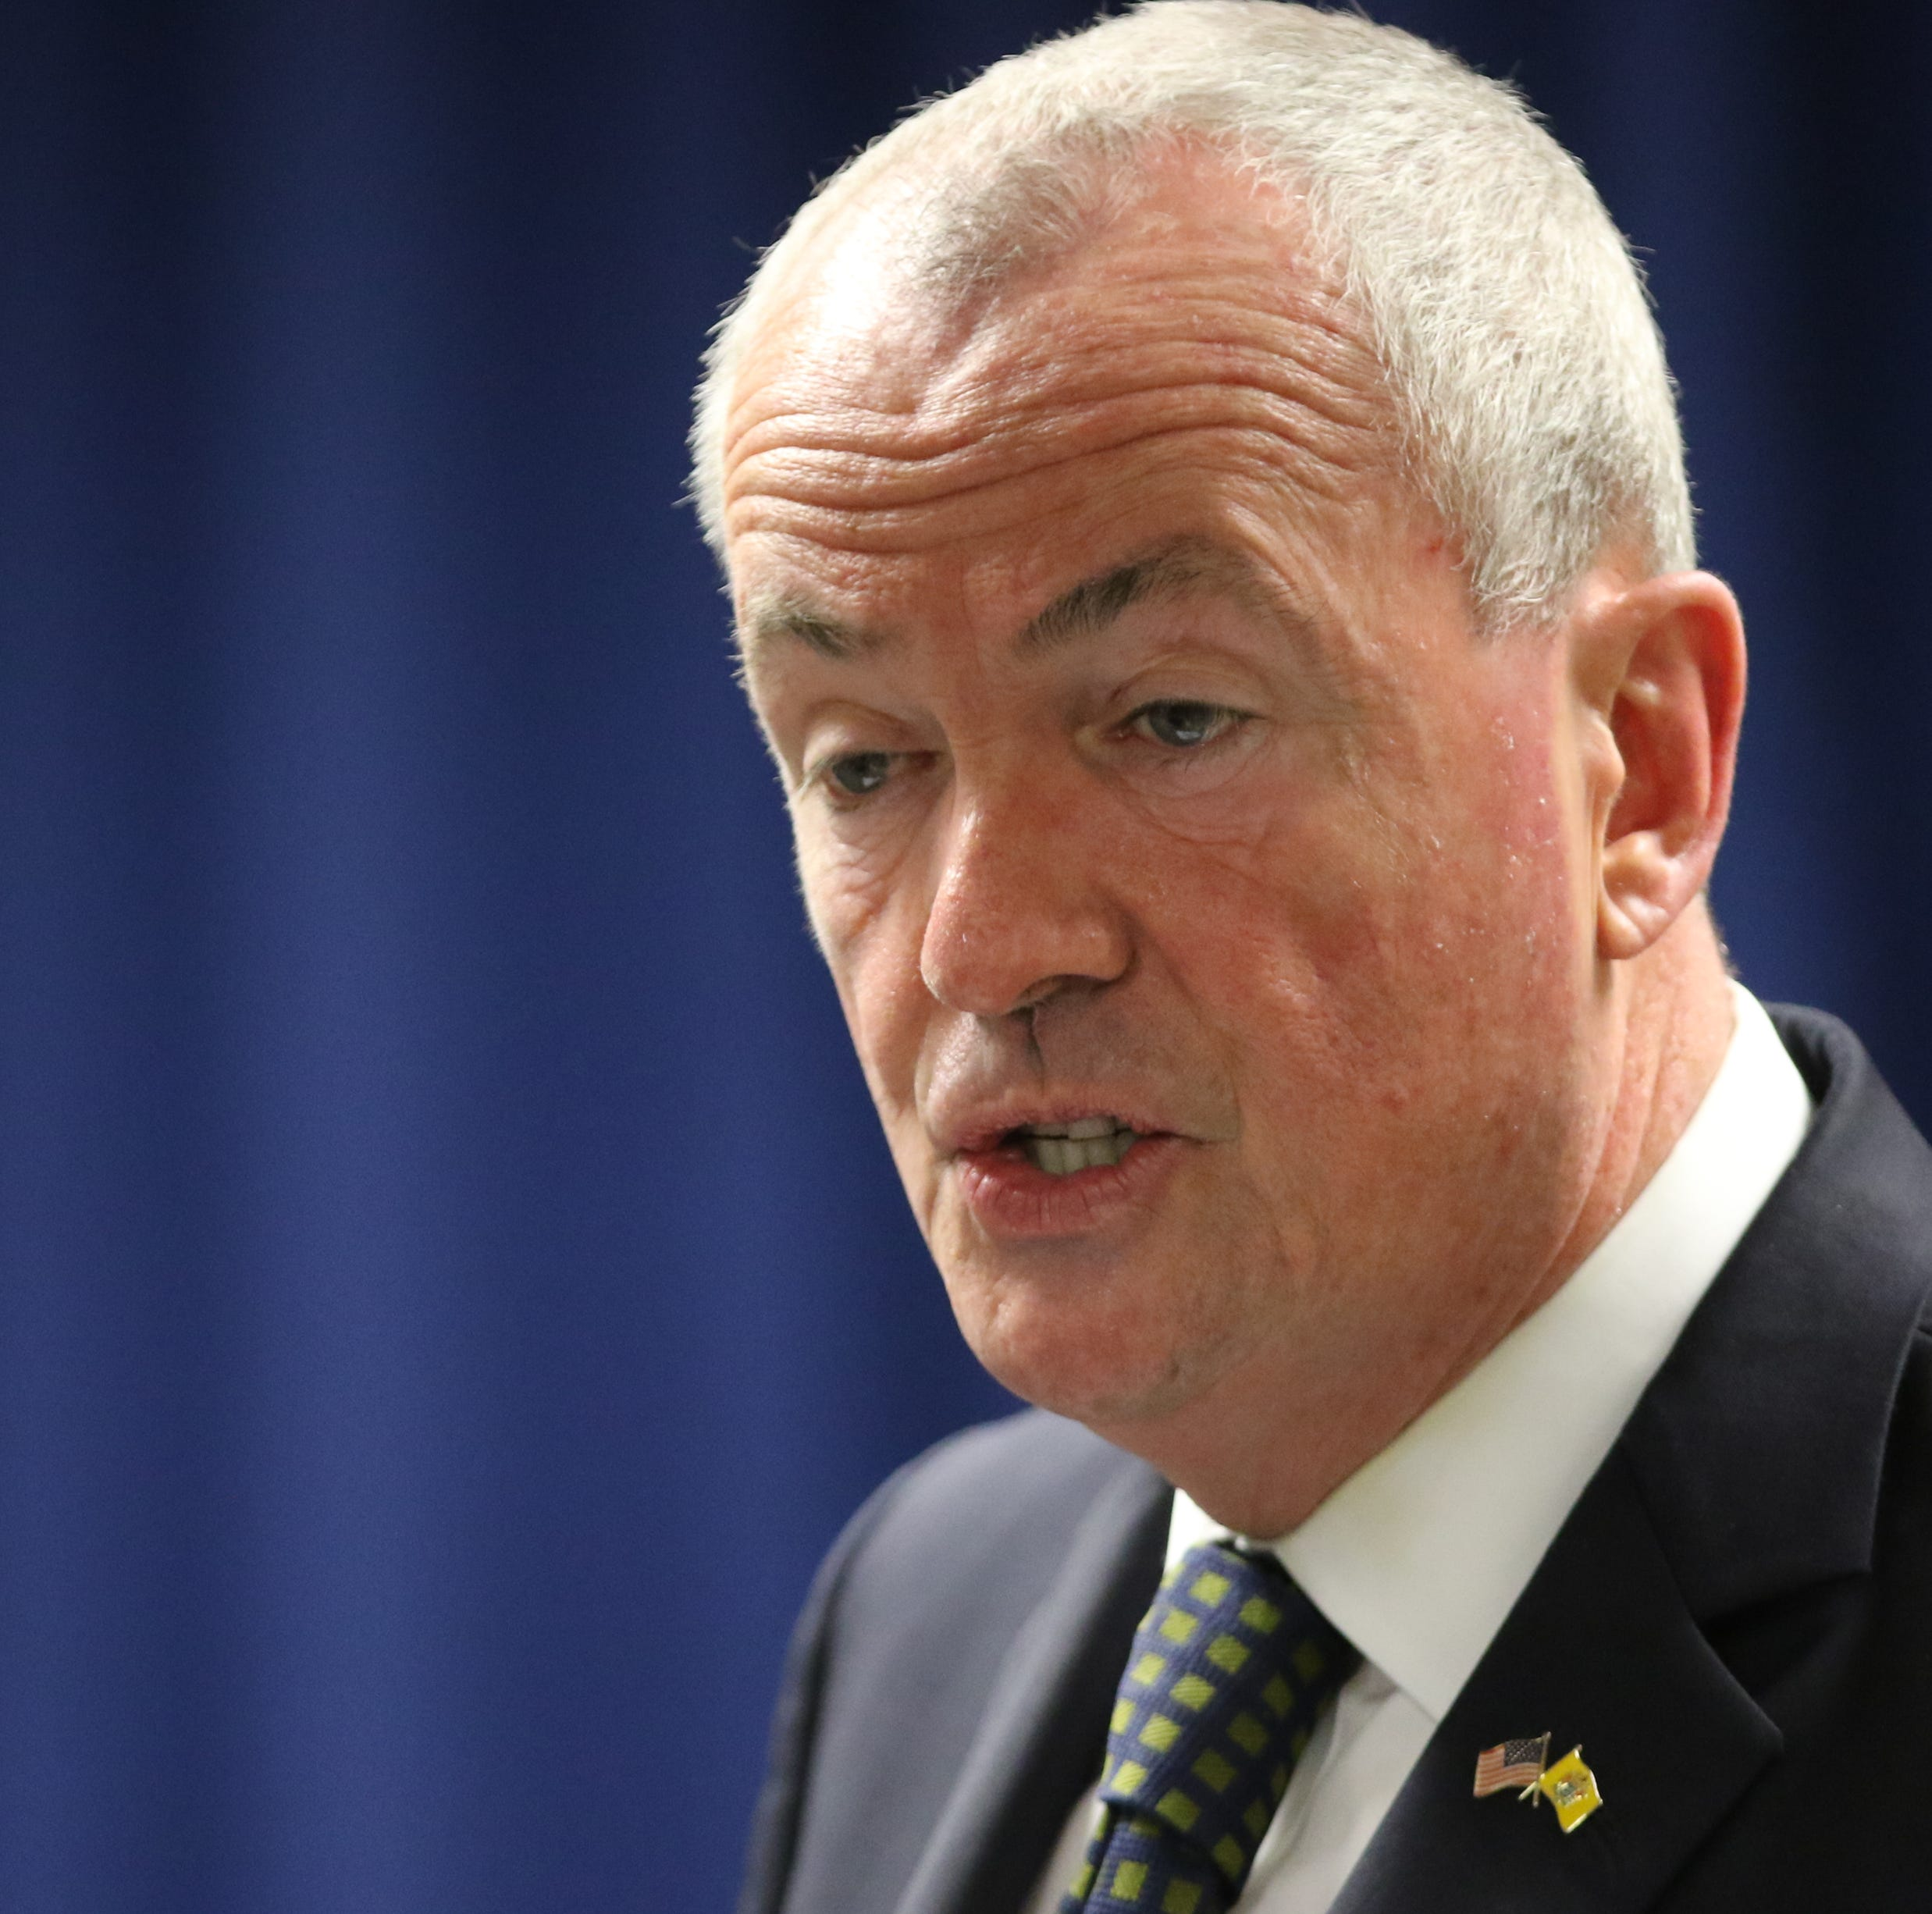 Gov. Phil Murphy gets slammed on Twitter for handling of snowstorm